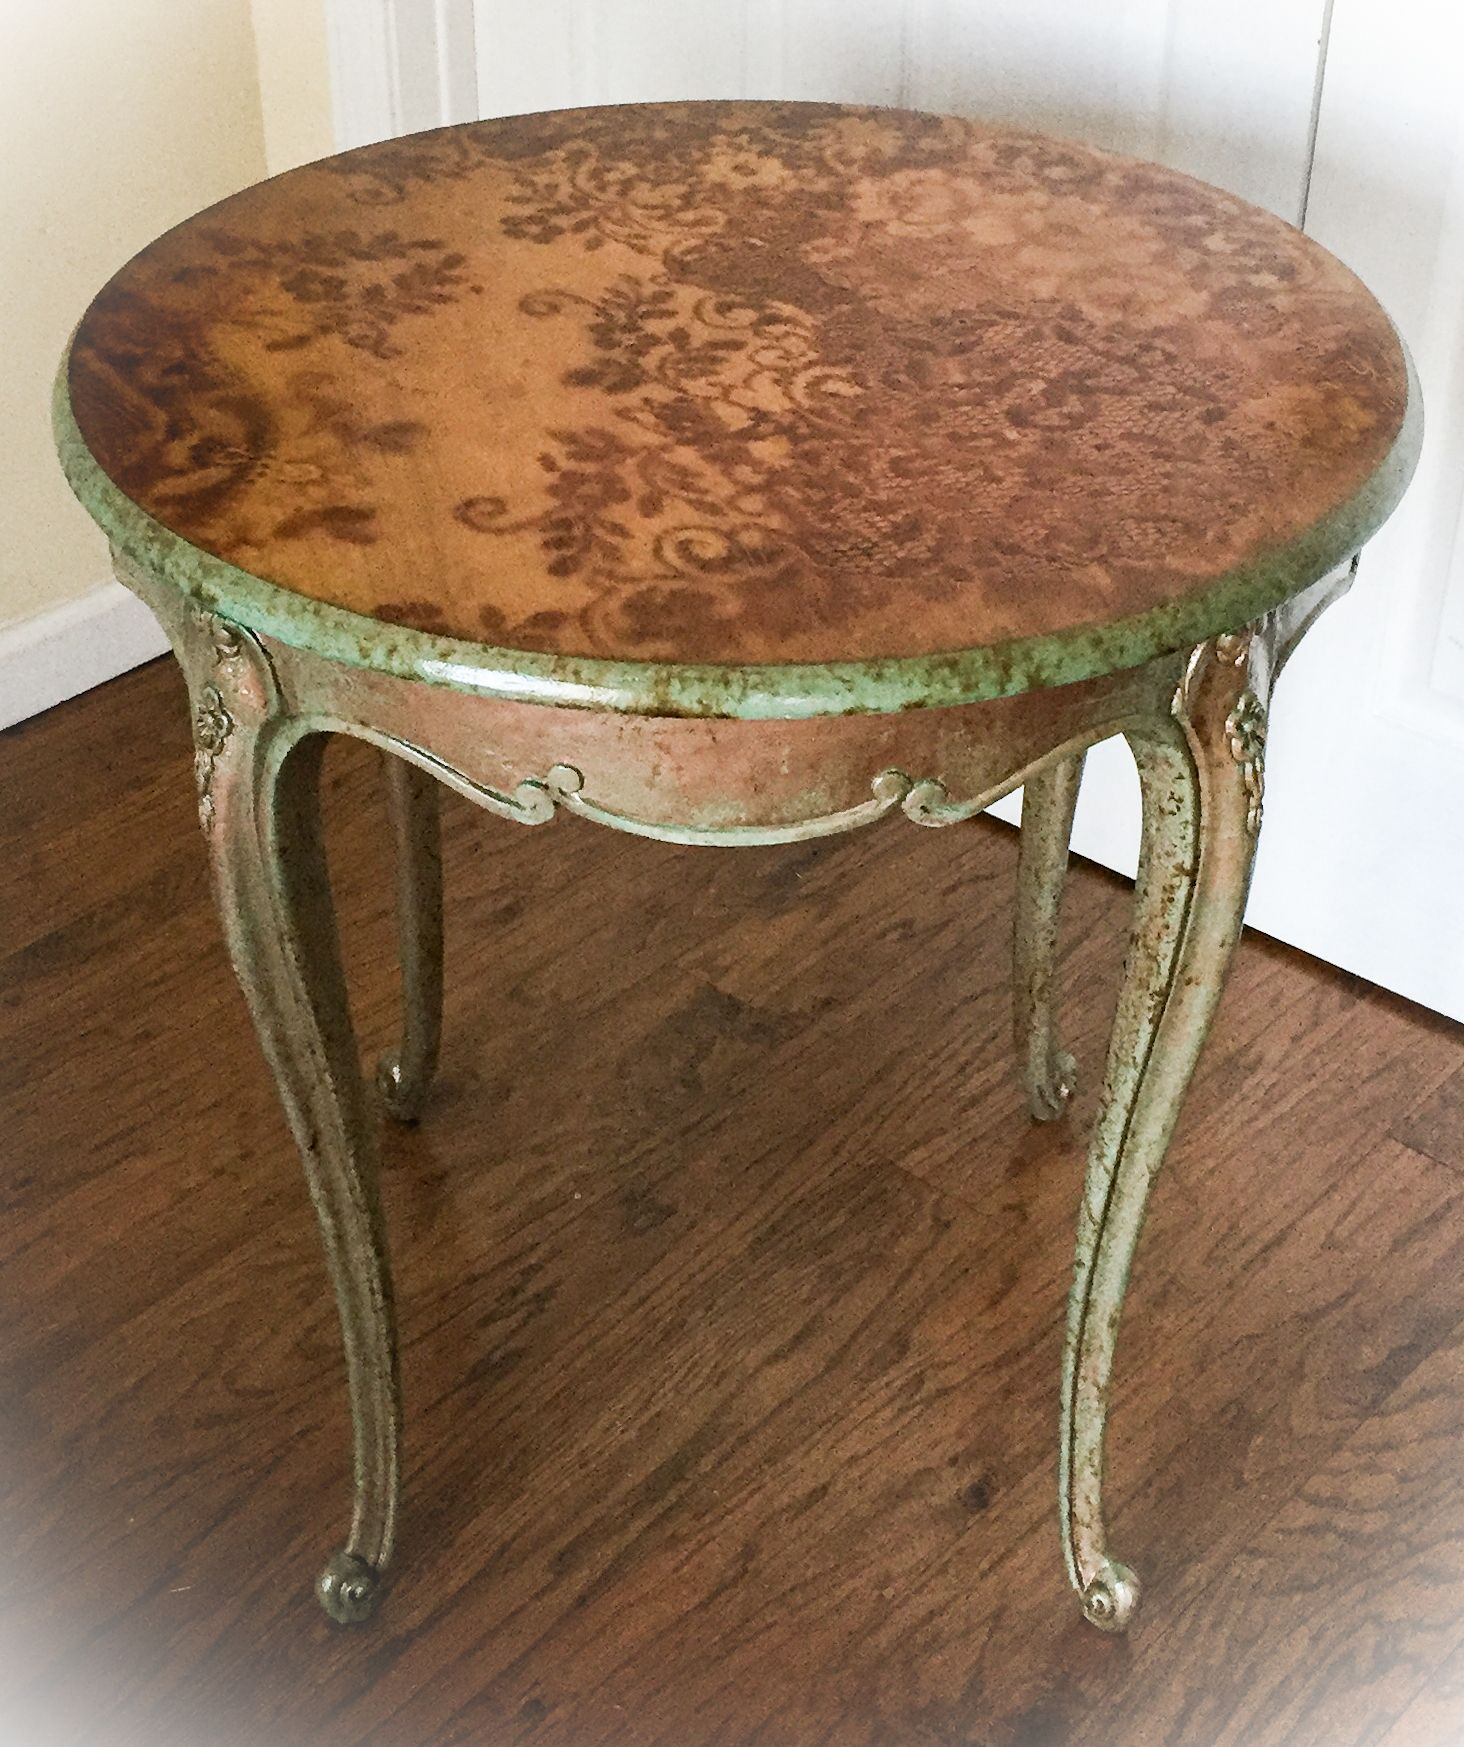 Incredible Antique Accent Table Copper Patina Stained Wood End Home Interior And Landscaping Palasignezvosmurscom